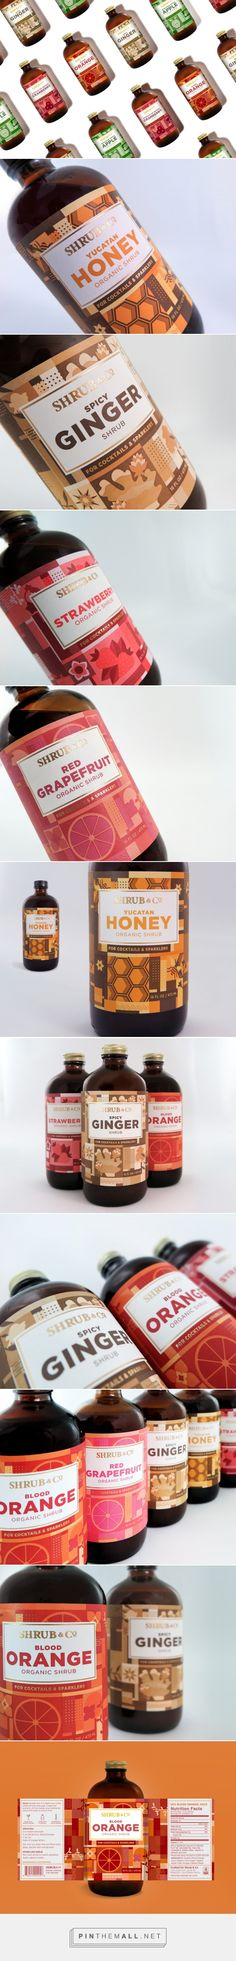 Shrub & Co Labels - Packaging of the World - Creative Package Design Gallery - http://www.packagingoftheworld.com/2017/06/shrub-co-labels.html